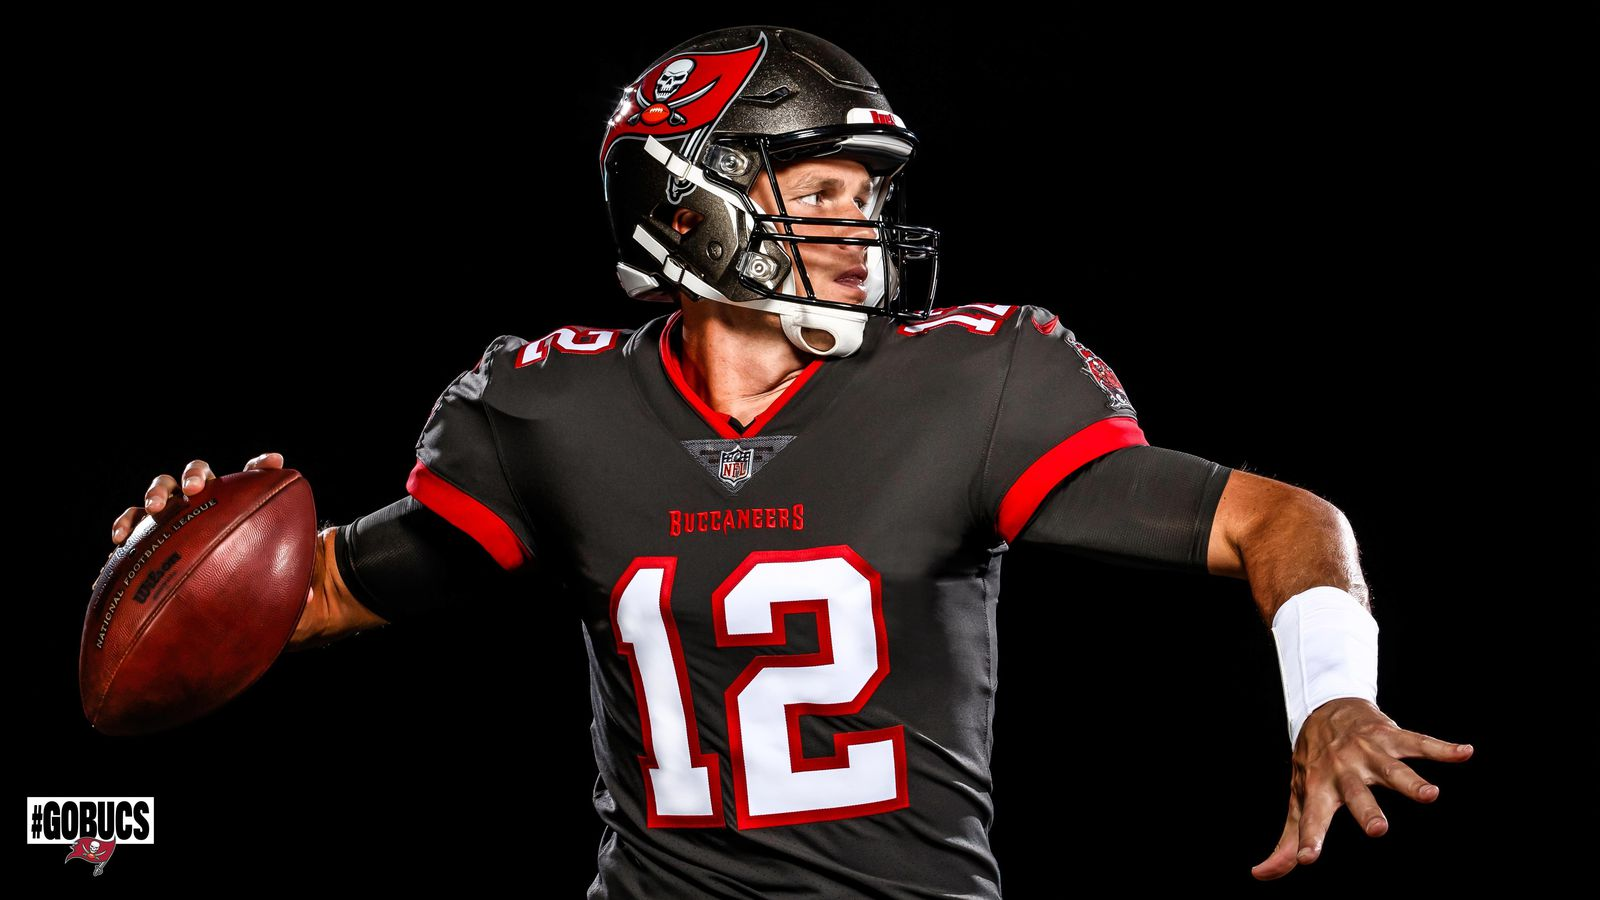 bucs unveil their first photos of tom brady in uniform photos of tom brady in uniform